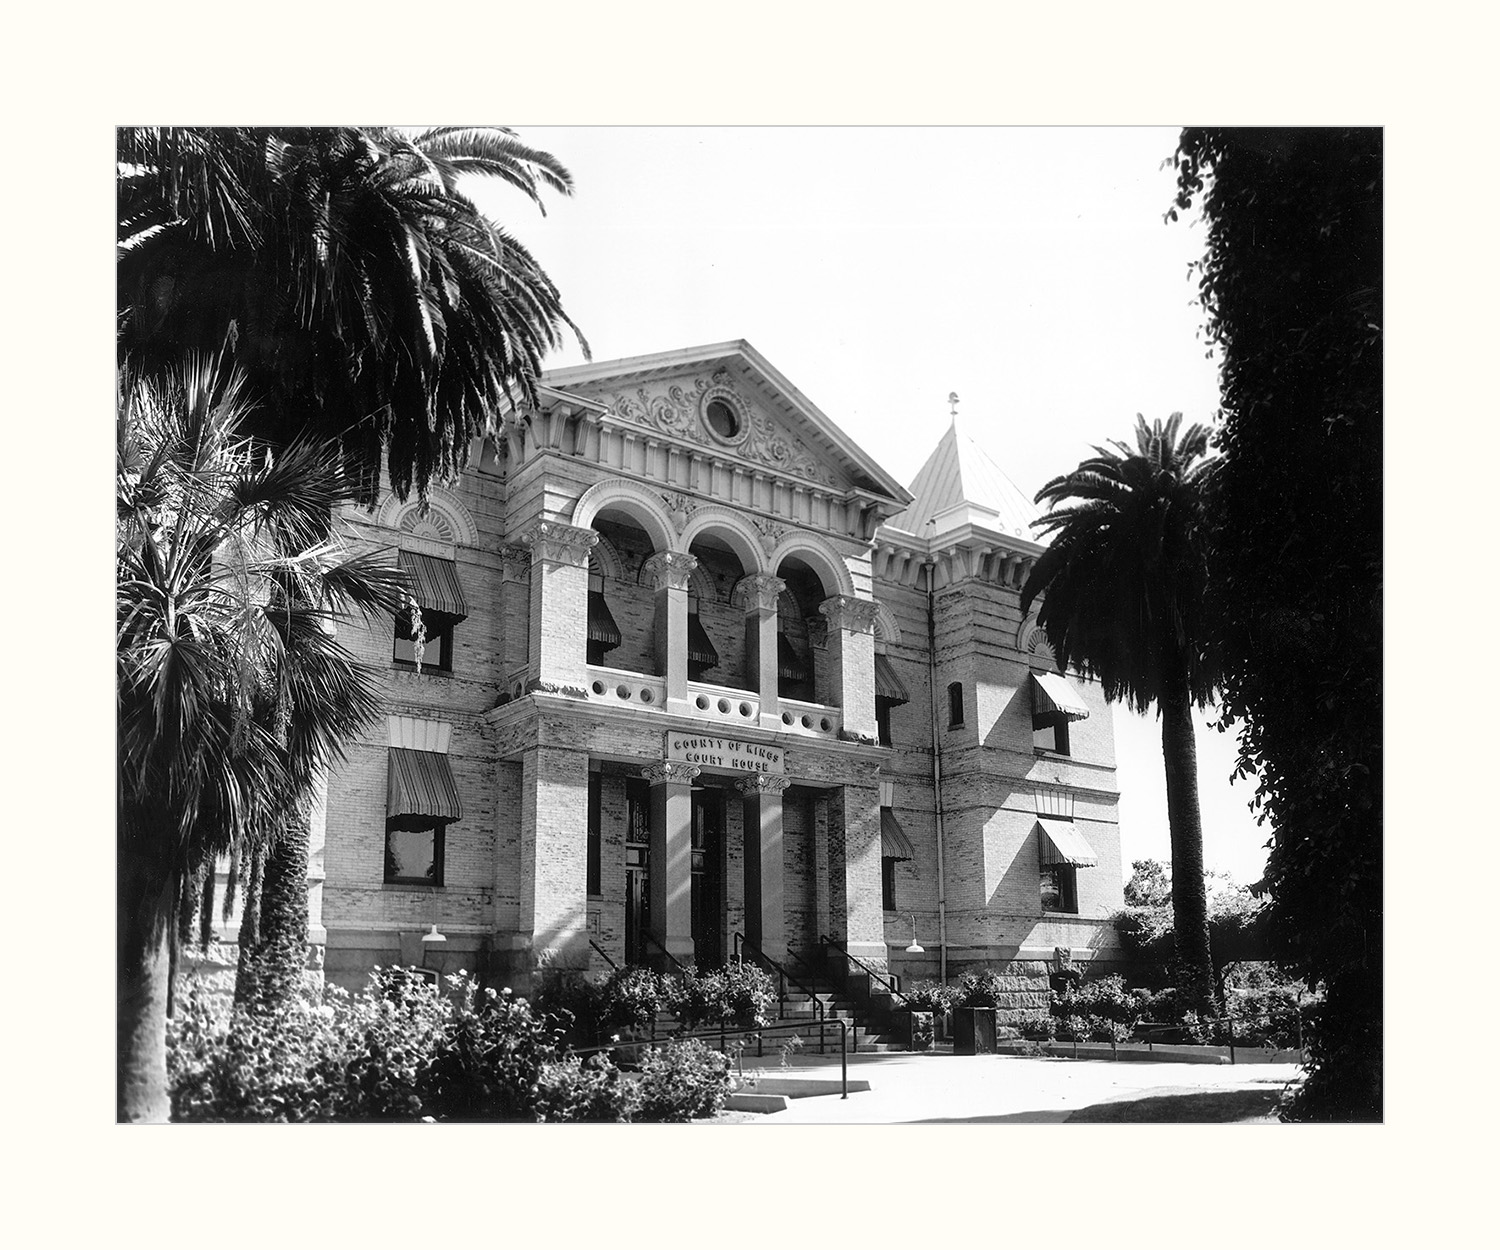 California County Courthouses: Kings